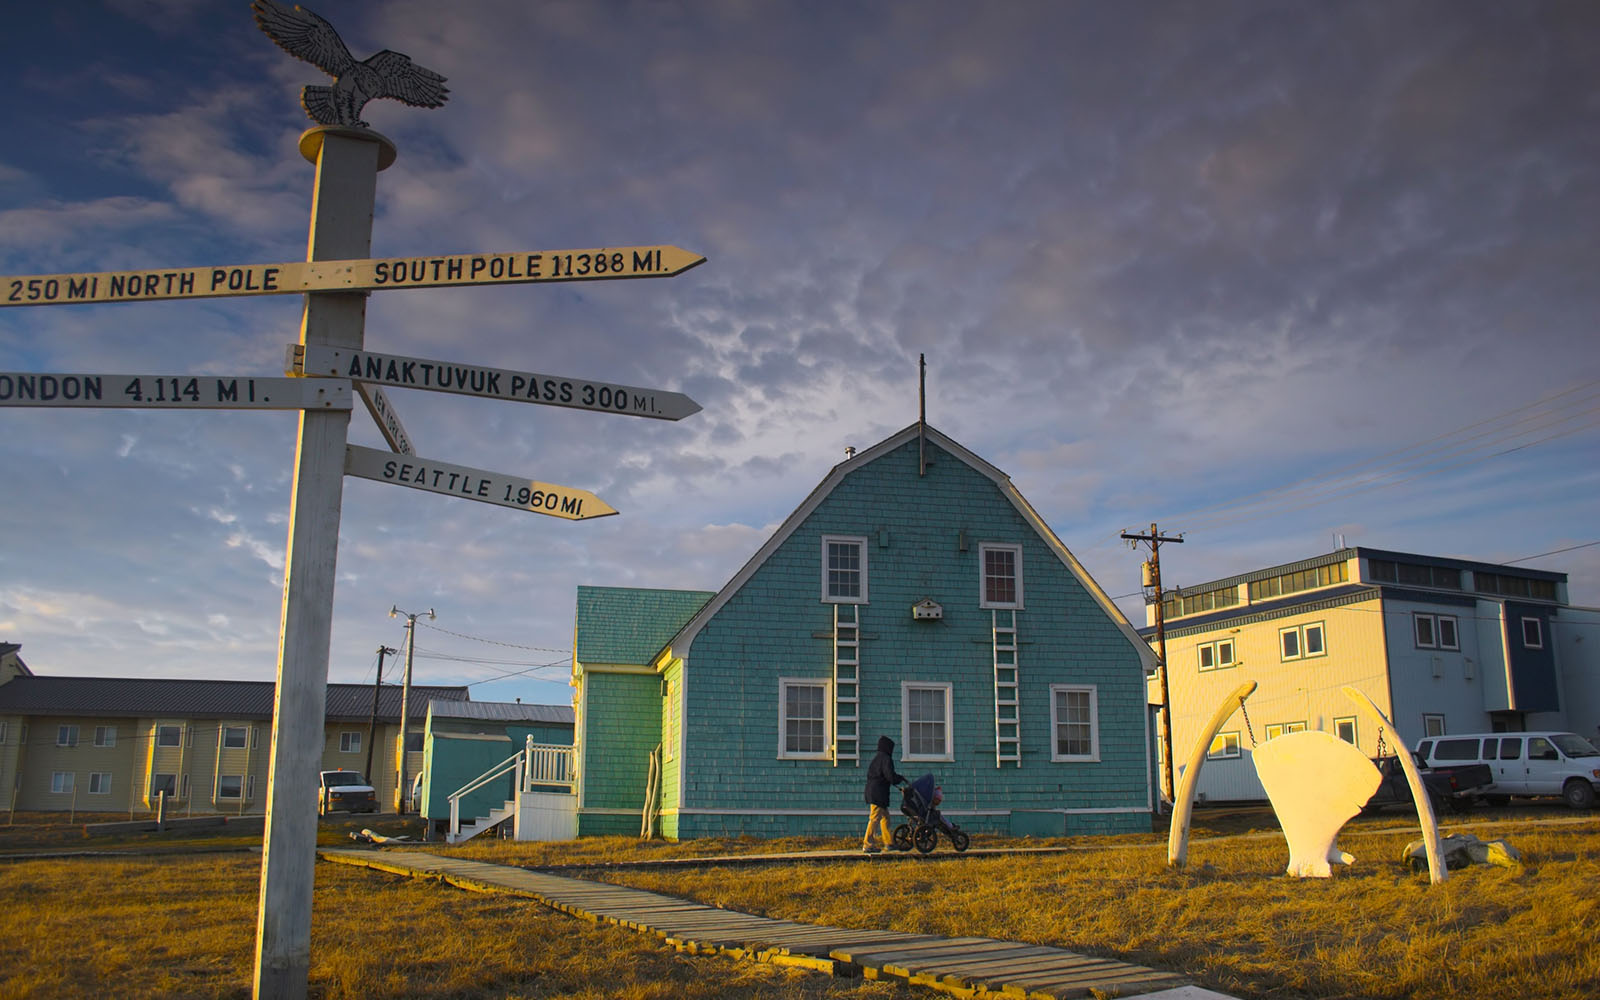 Photo of houses in Barrow, Alaska and a signpost pointing to far-away places